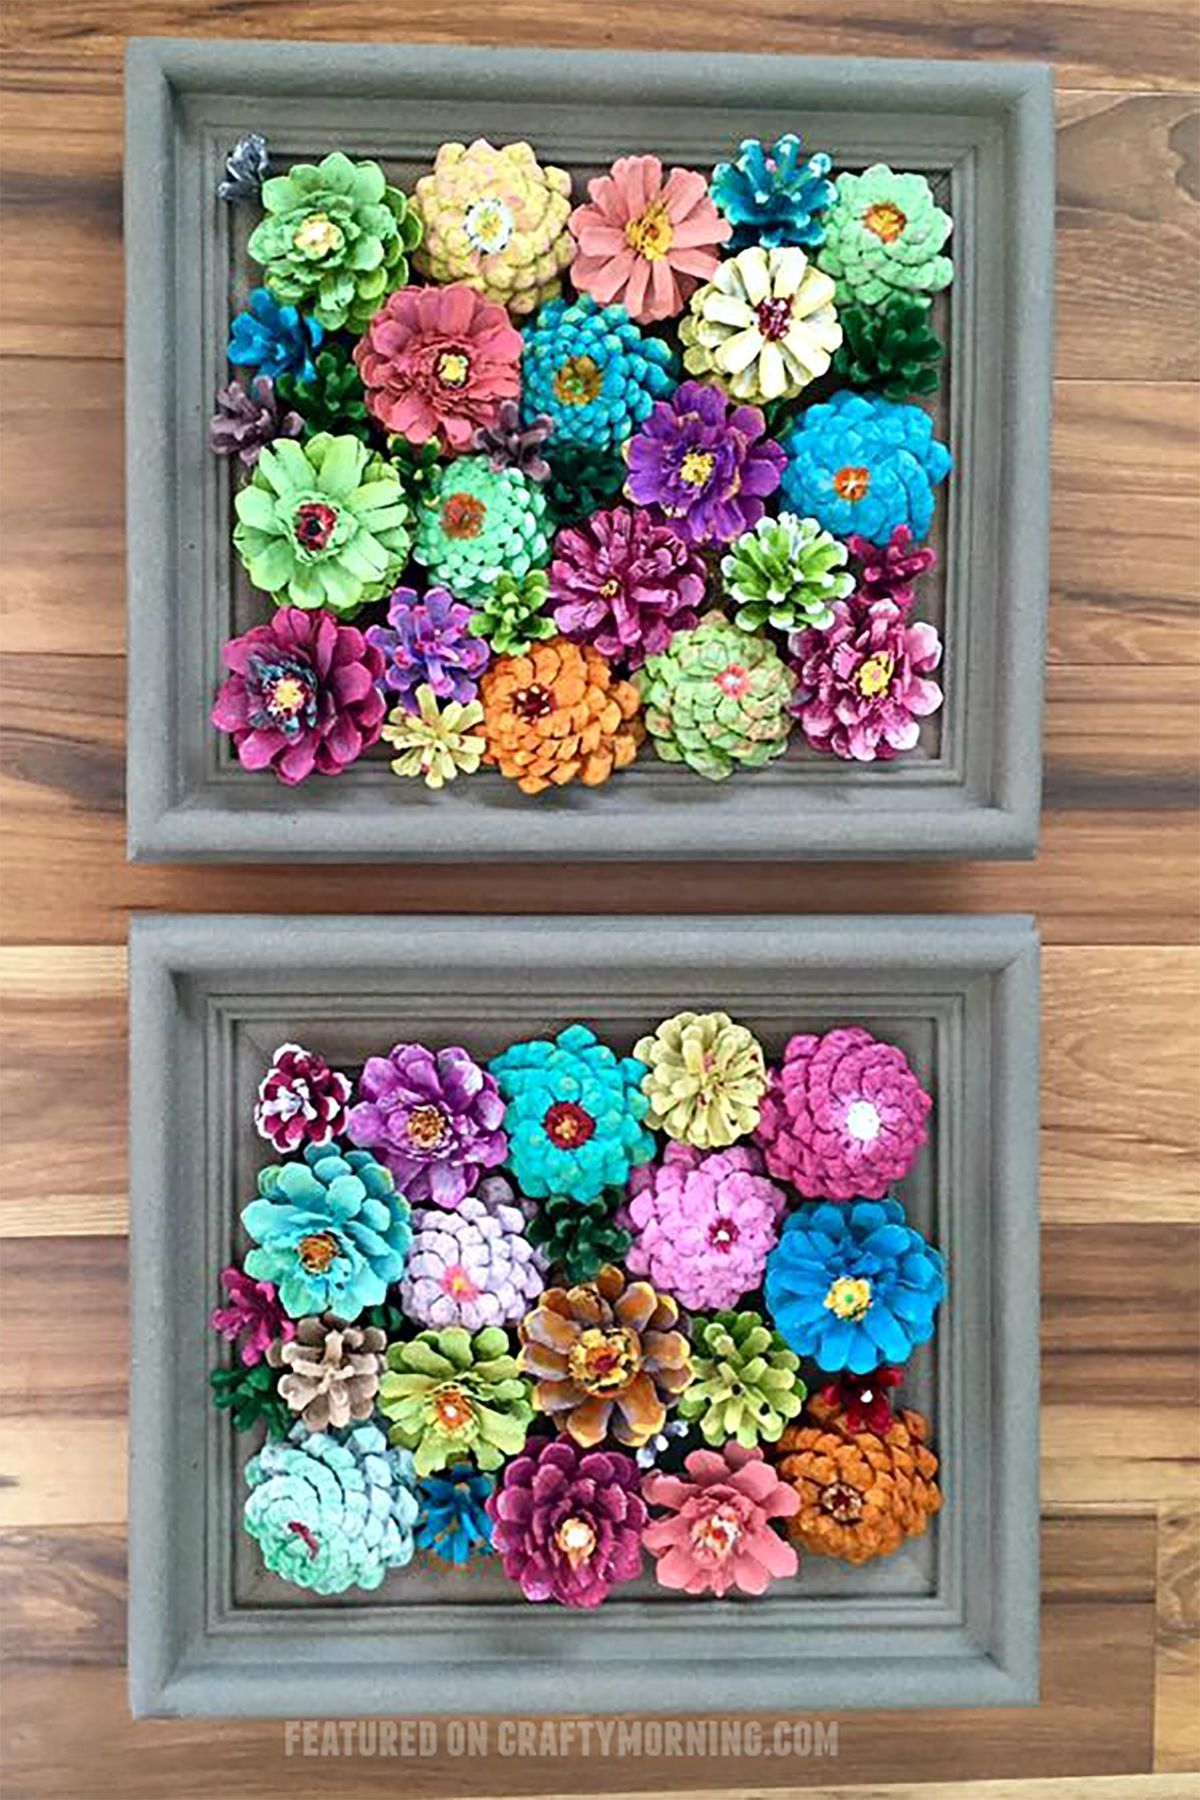 These Creative DIY Spring Crafts Will Instantly Brighten Your Home